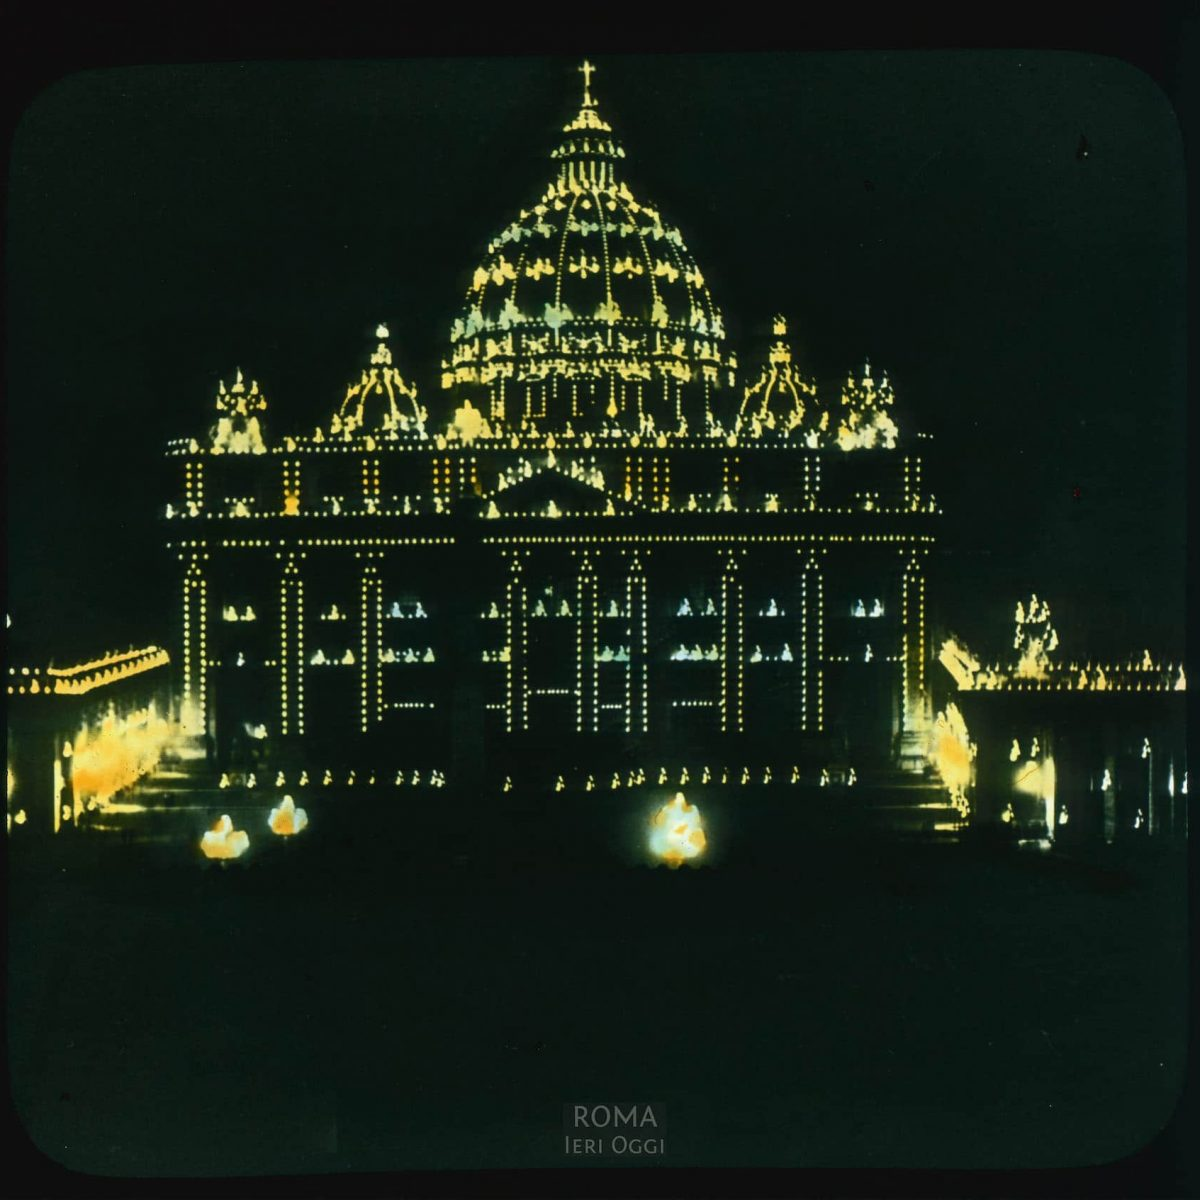 Vatican City. St. Peter's Basilica: facade on Piazza San Pietro, at night, with lights View in tinted lantern slide, ca. 1919-1938. The basilica dates from ca. 1506-1626.